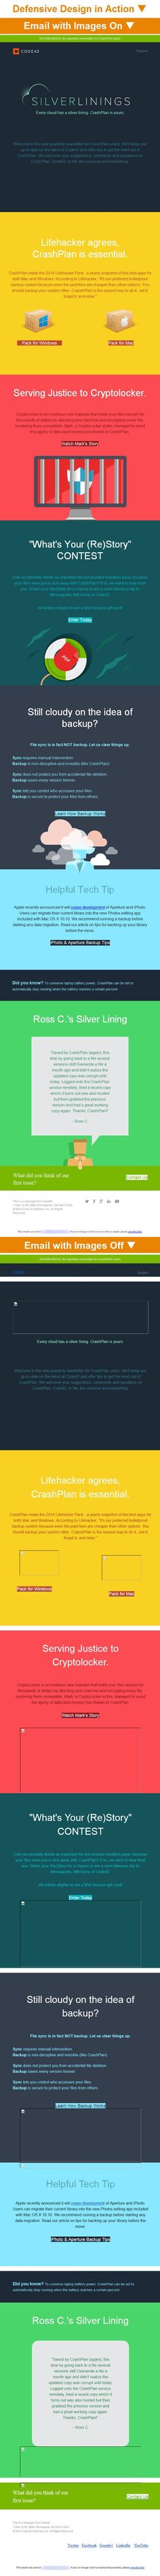 22 best email newsletters design images on pinterest email